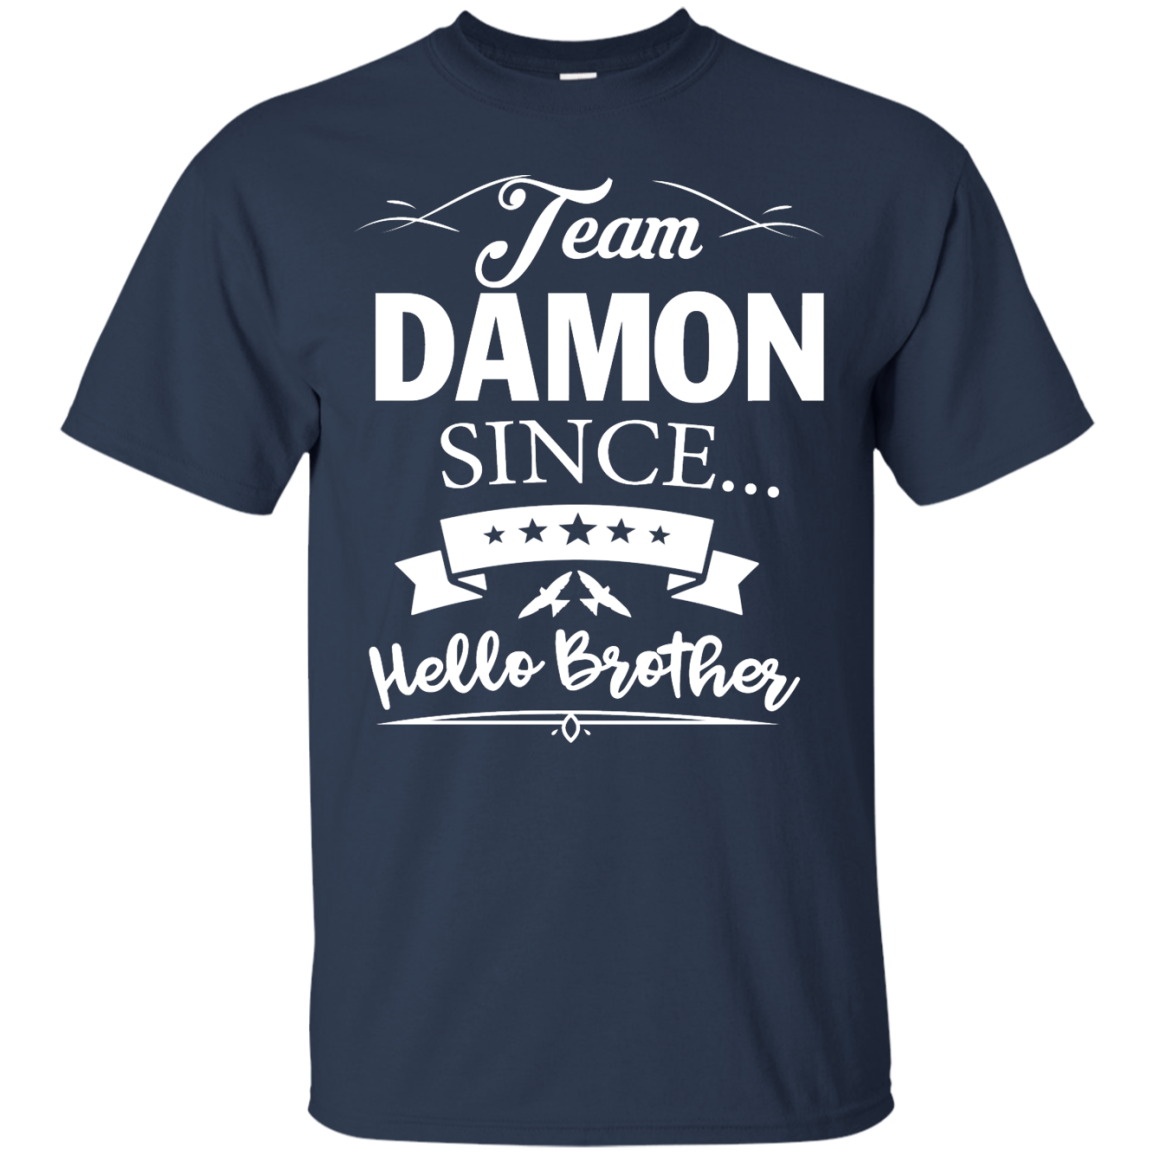 Team Damon Since Hello Brother. Damon Salvatore T-Shirt - Custom Ultra Cotton T-Shirt - Navy